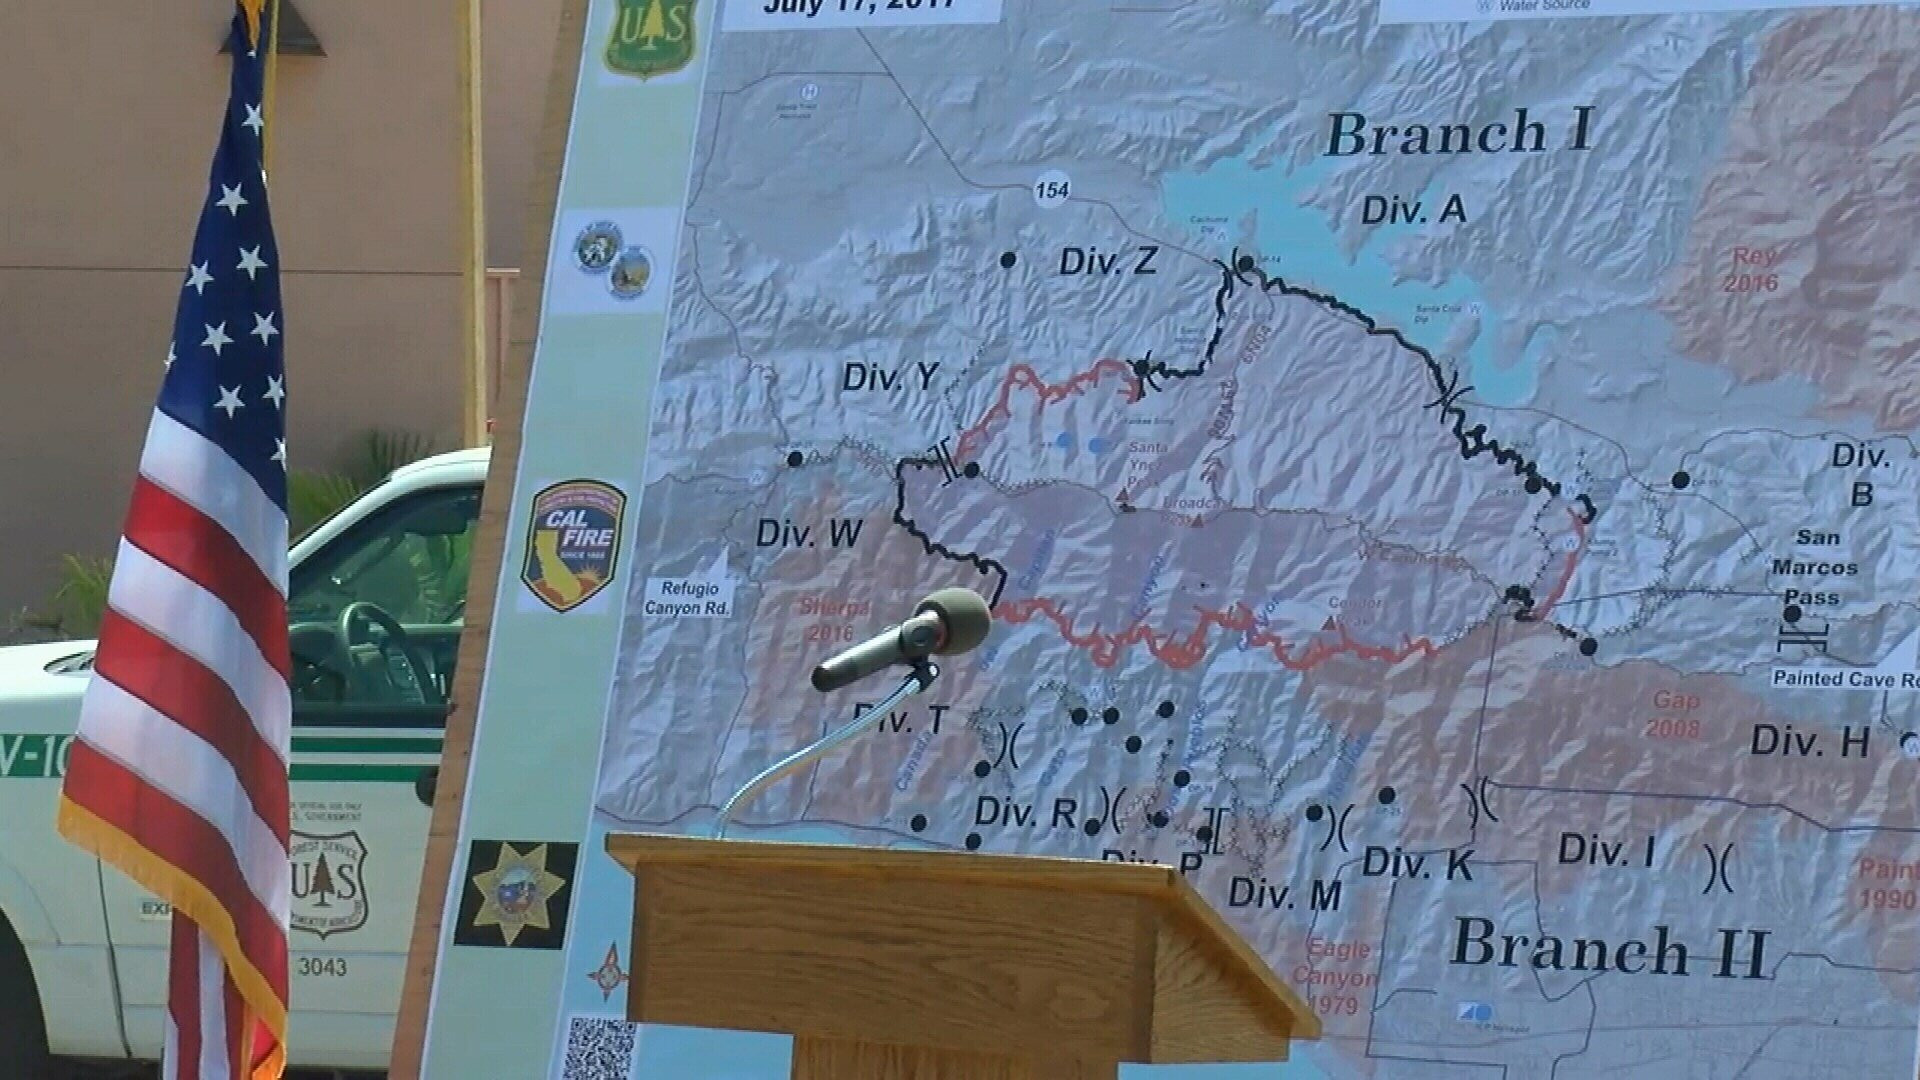 Fire crews working on the Whittier Fire meet for the latest update. (KSBY Photo)